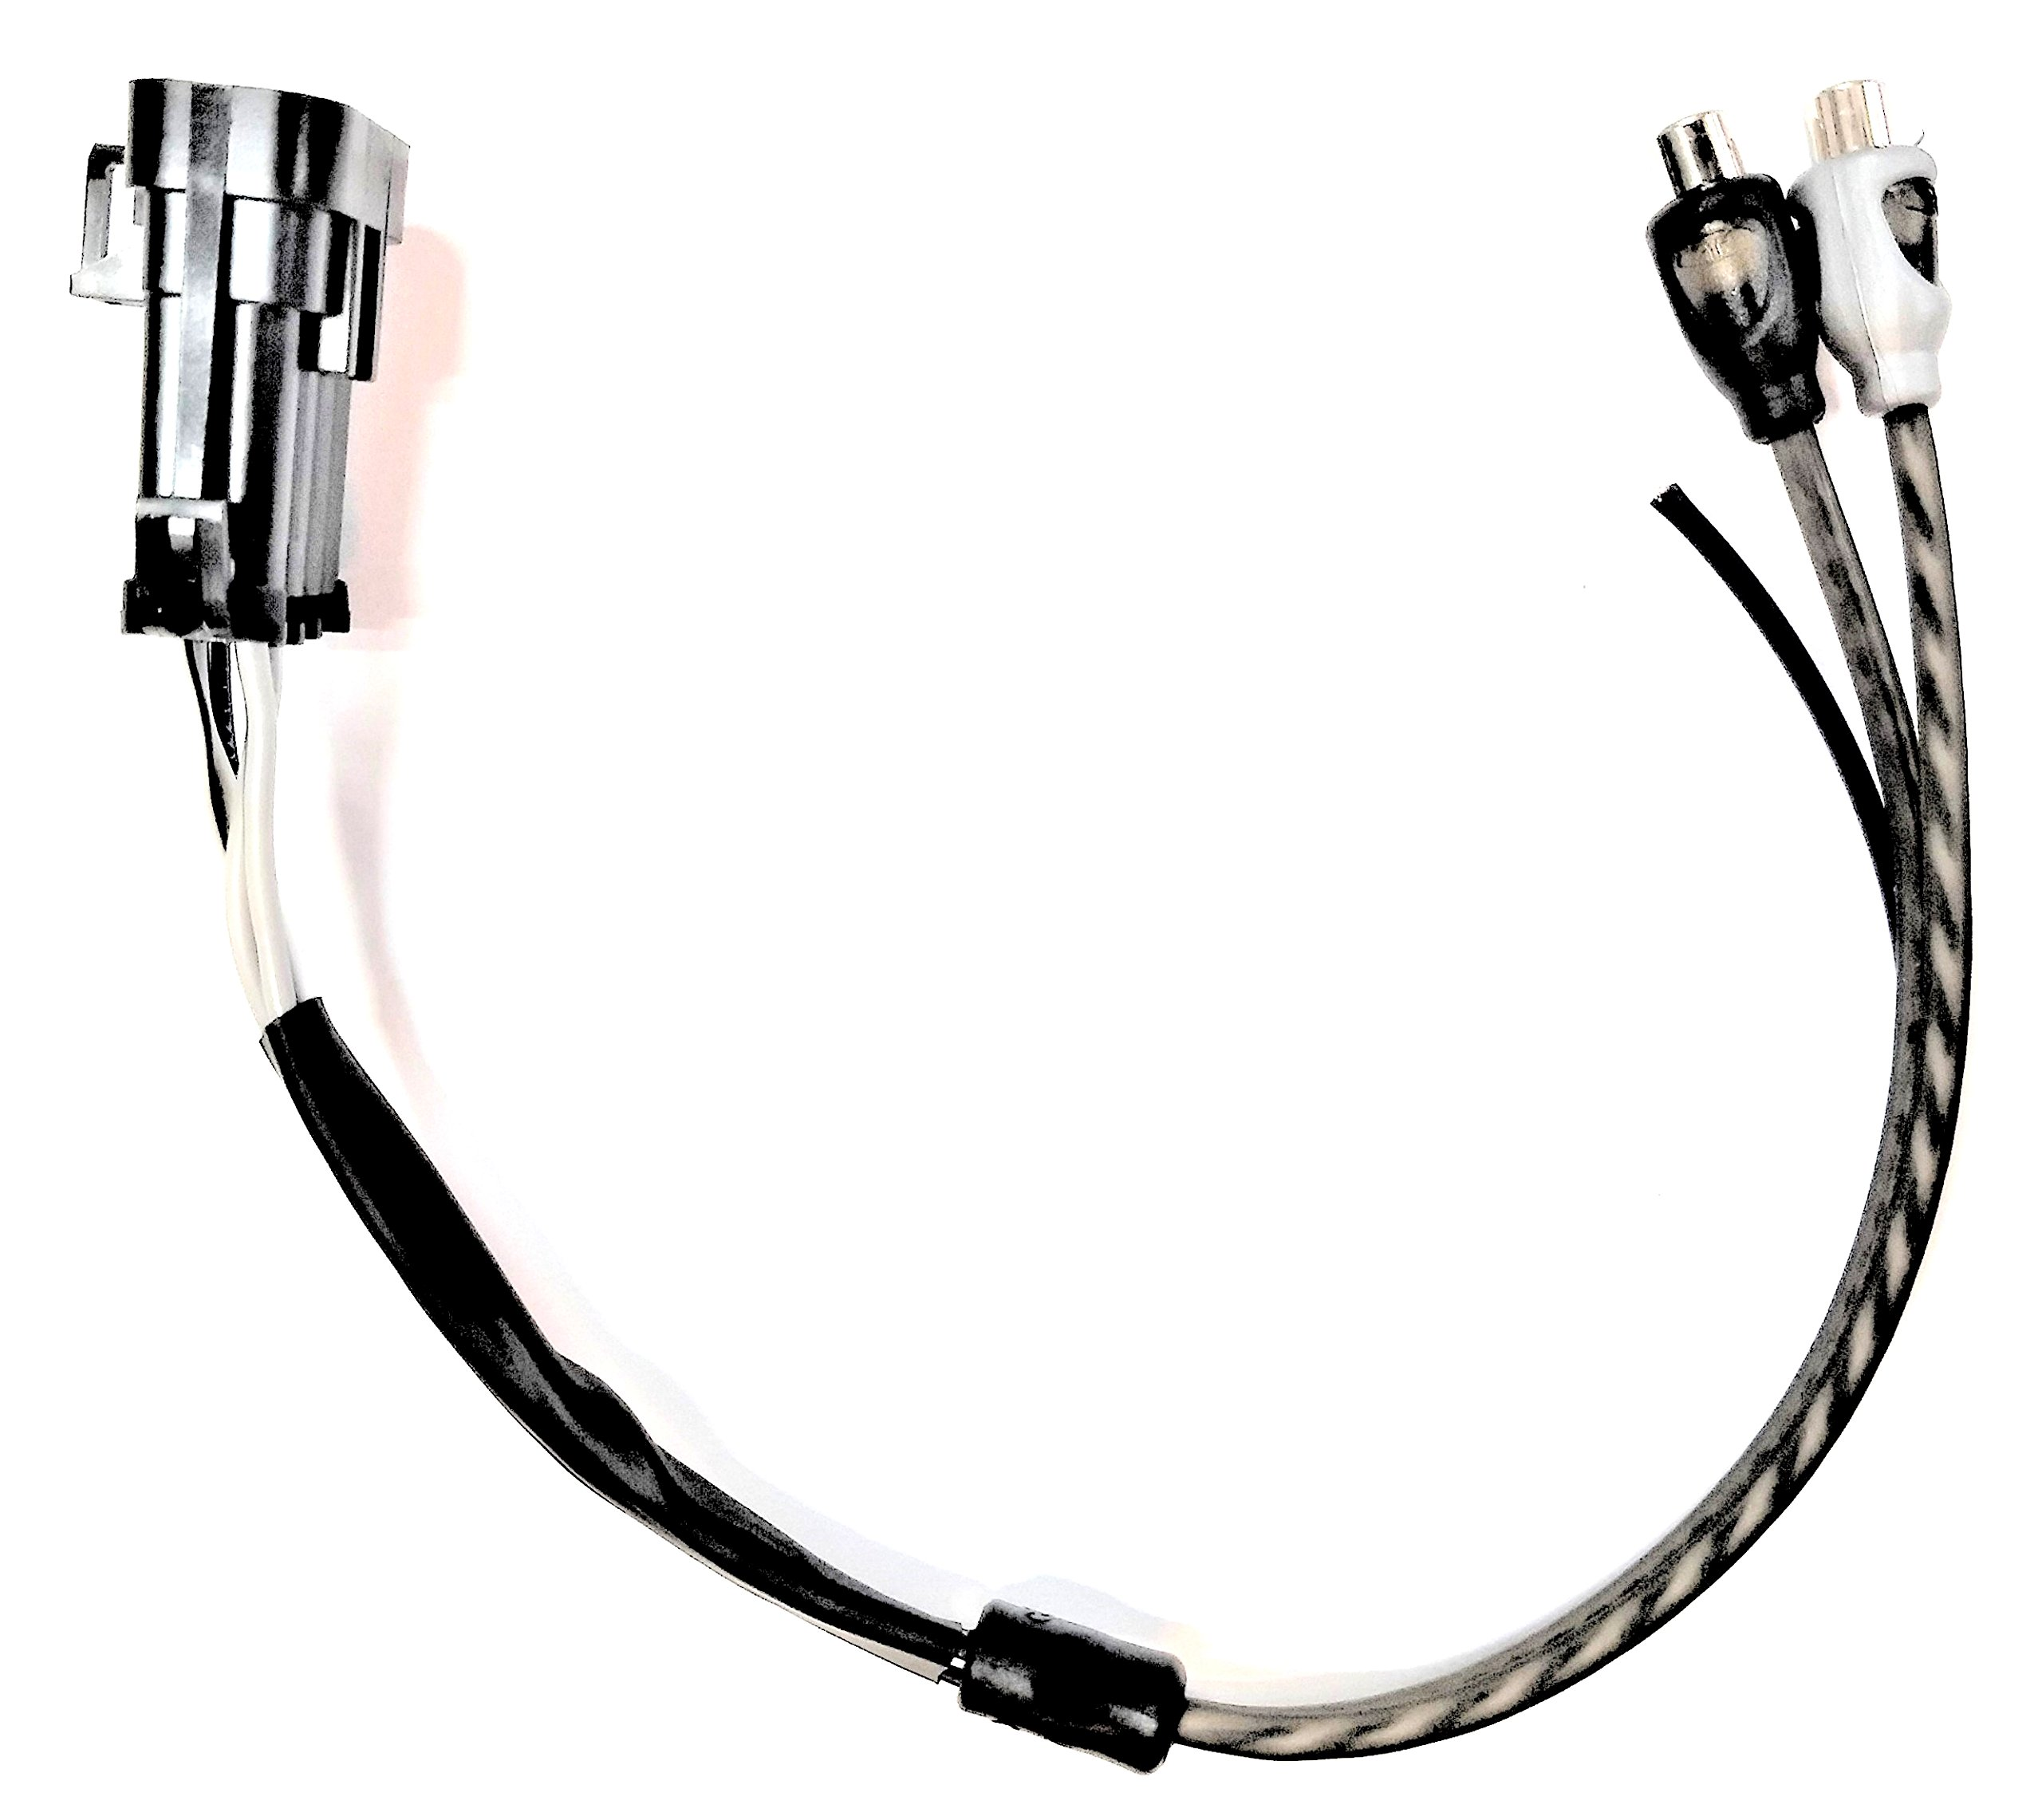 Polaris Ride Command 7'' Display Add-On Amplifier Harness - FEMALE - Plugs into factory wiring harness. Easily add an external amplifier